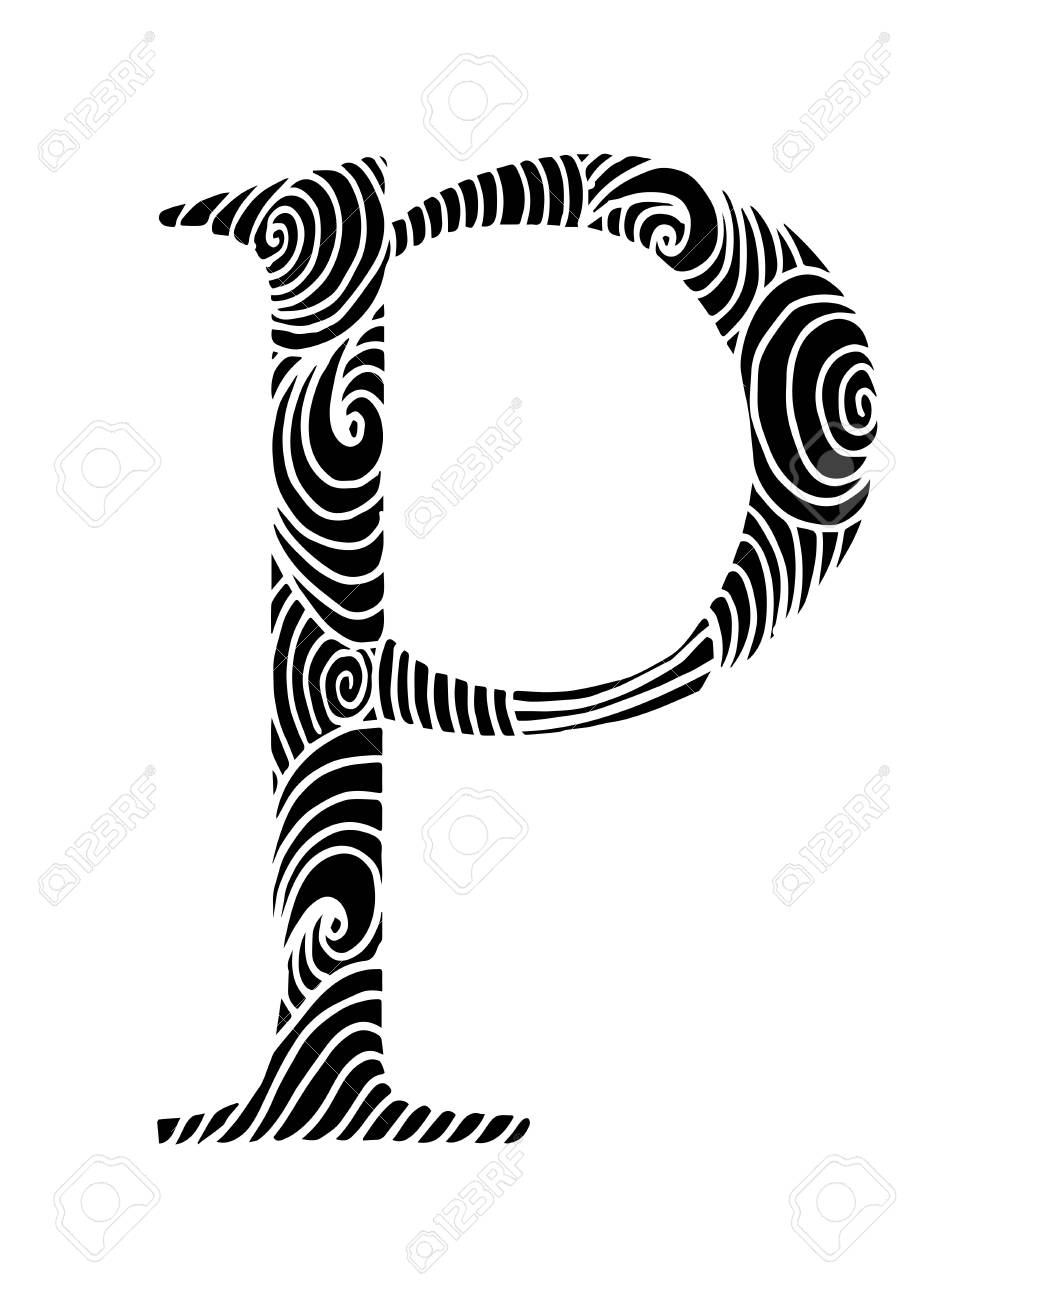 zentangle stylized alphabet letter p in doodle style hand drawn rh 123rf com